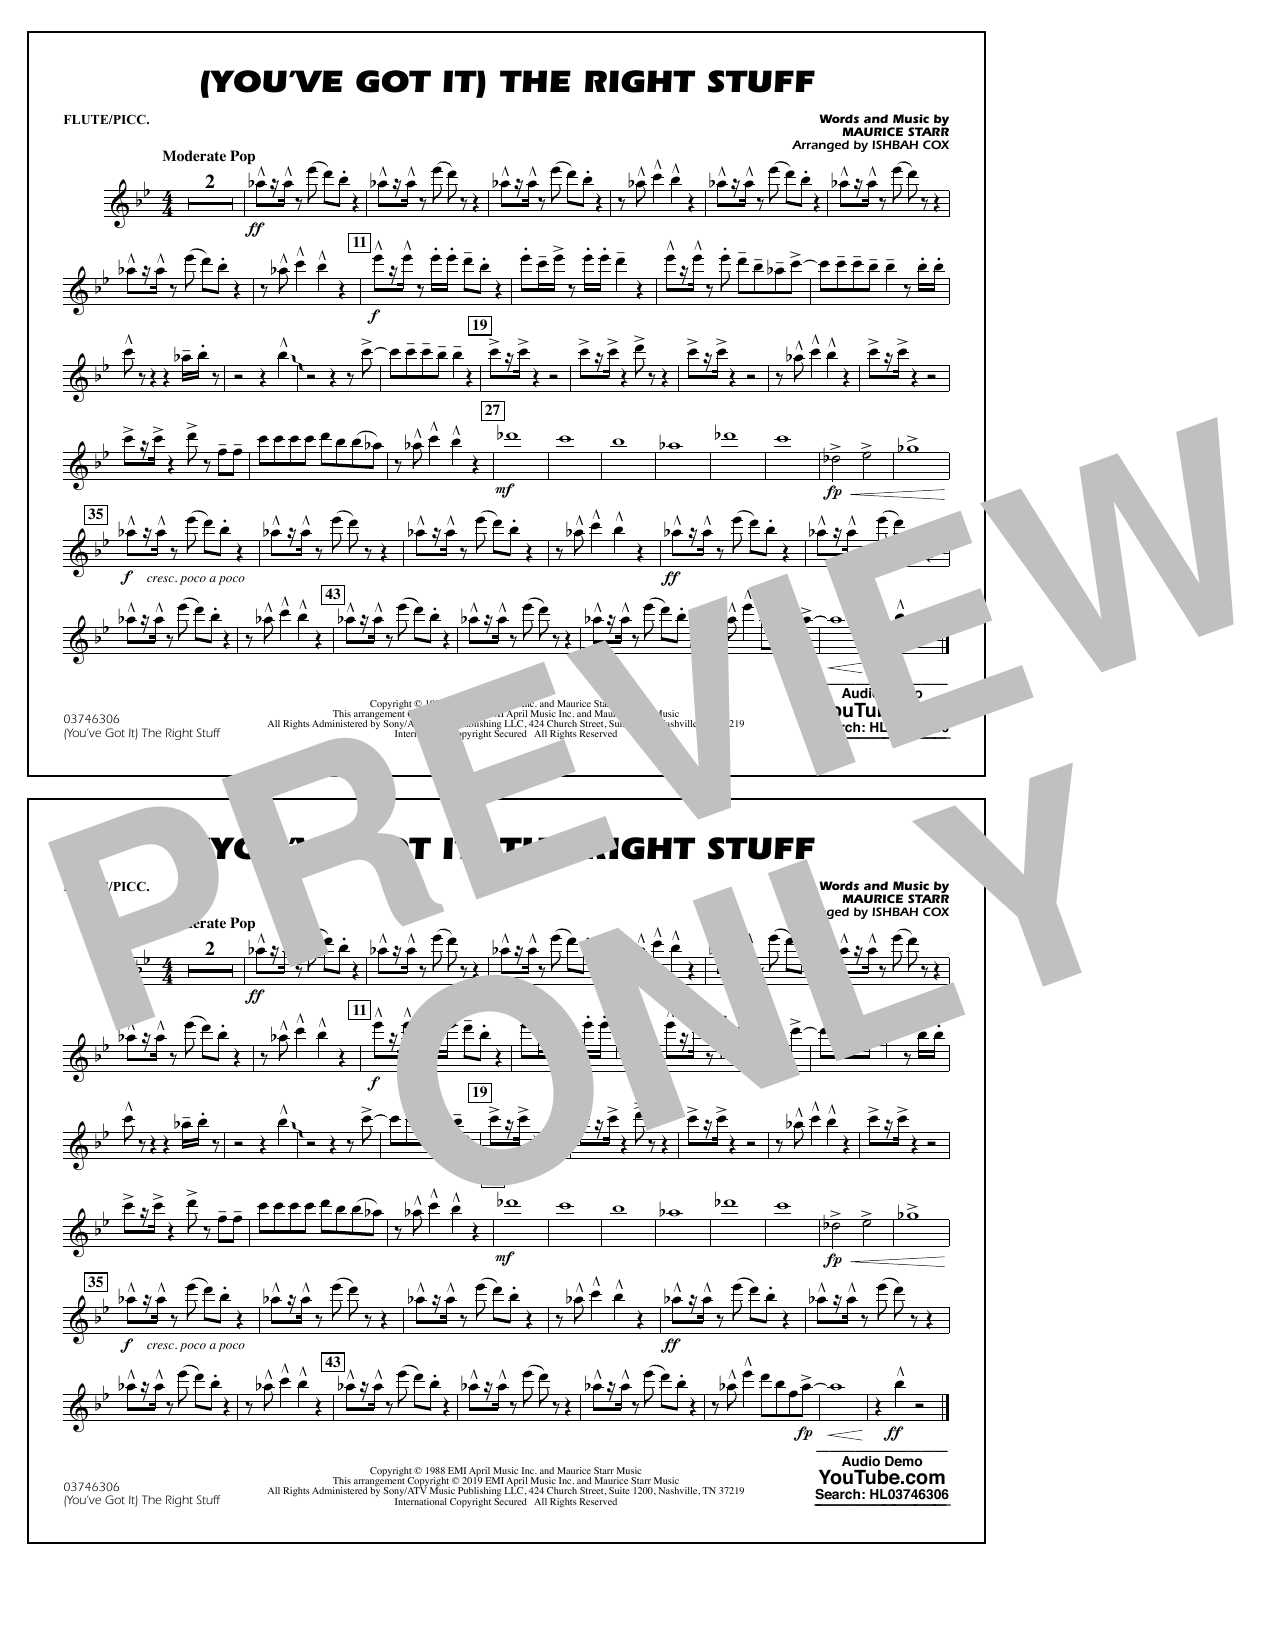 New Kids On The Block (You've Got It) The Right Stuff (arr. Ishbah Cox) - Flute/Piccolo sheet music preview music notes and score for Marching Band including 1 page(s)